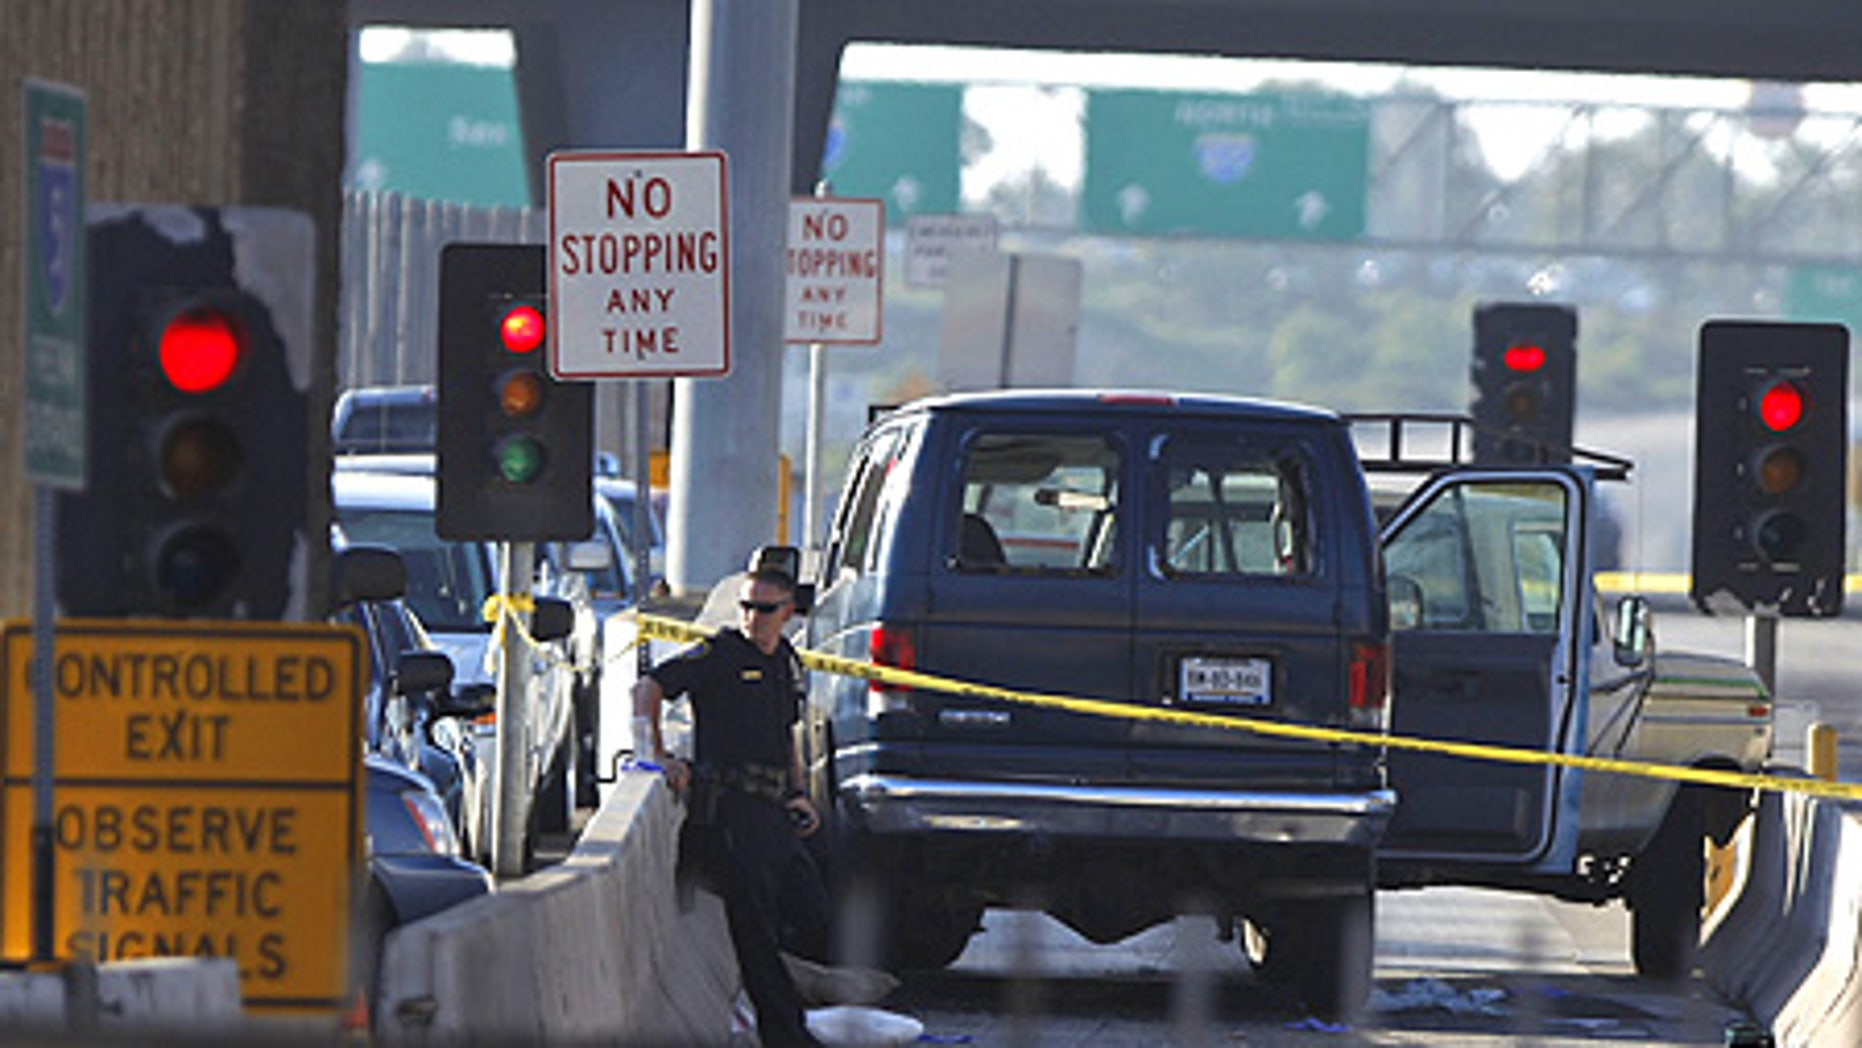 Sept. 22: A U.S. border officer is seen from Mexico's side of the San Ysidro port of entry guarding vehicles involved in a shooting.